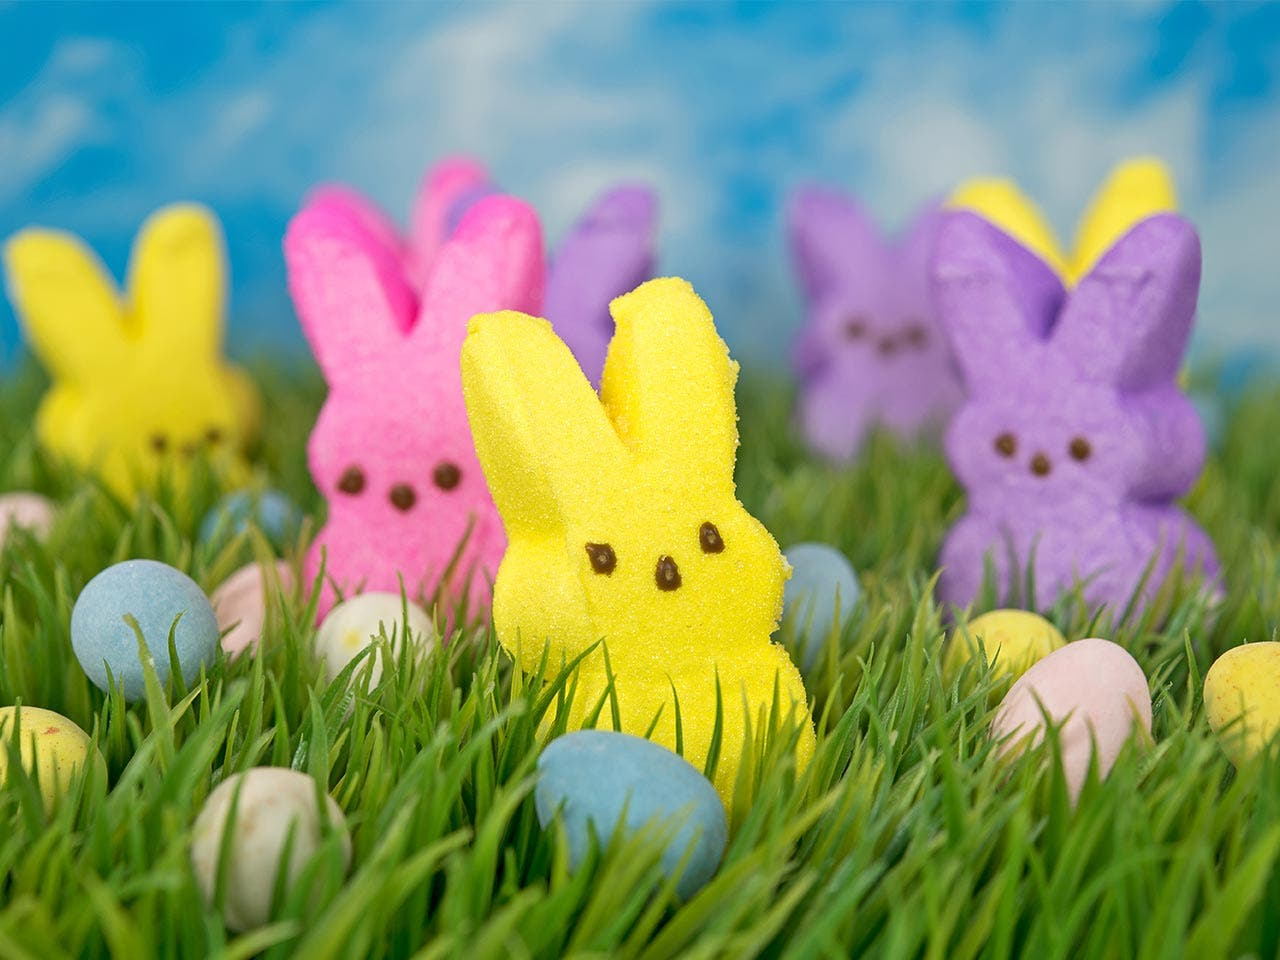 Easter candy | Maria Dryfhout/Shutterstock.com